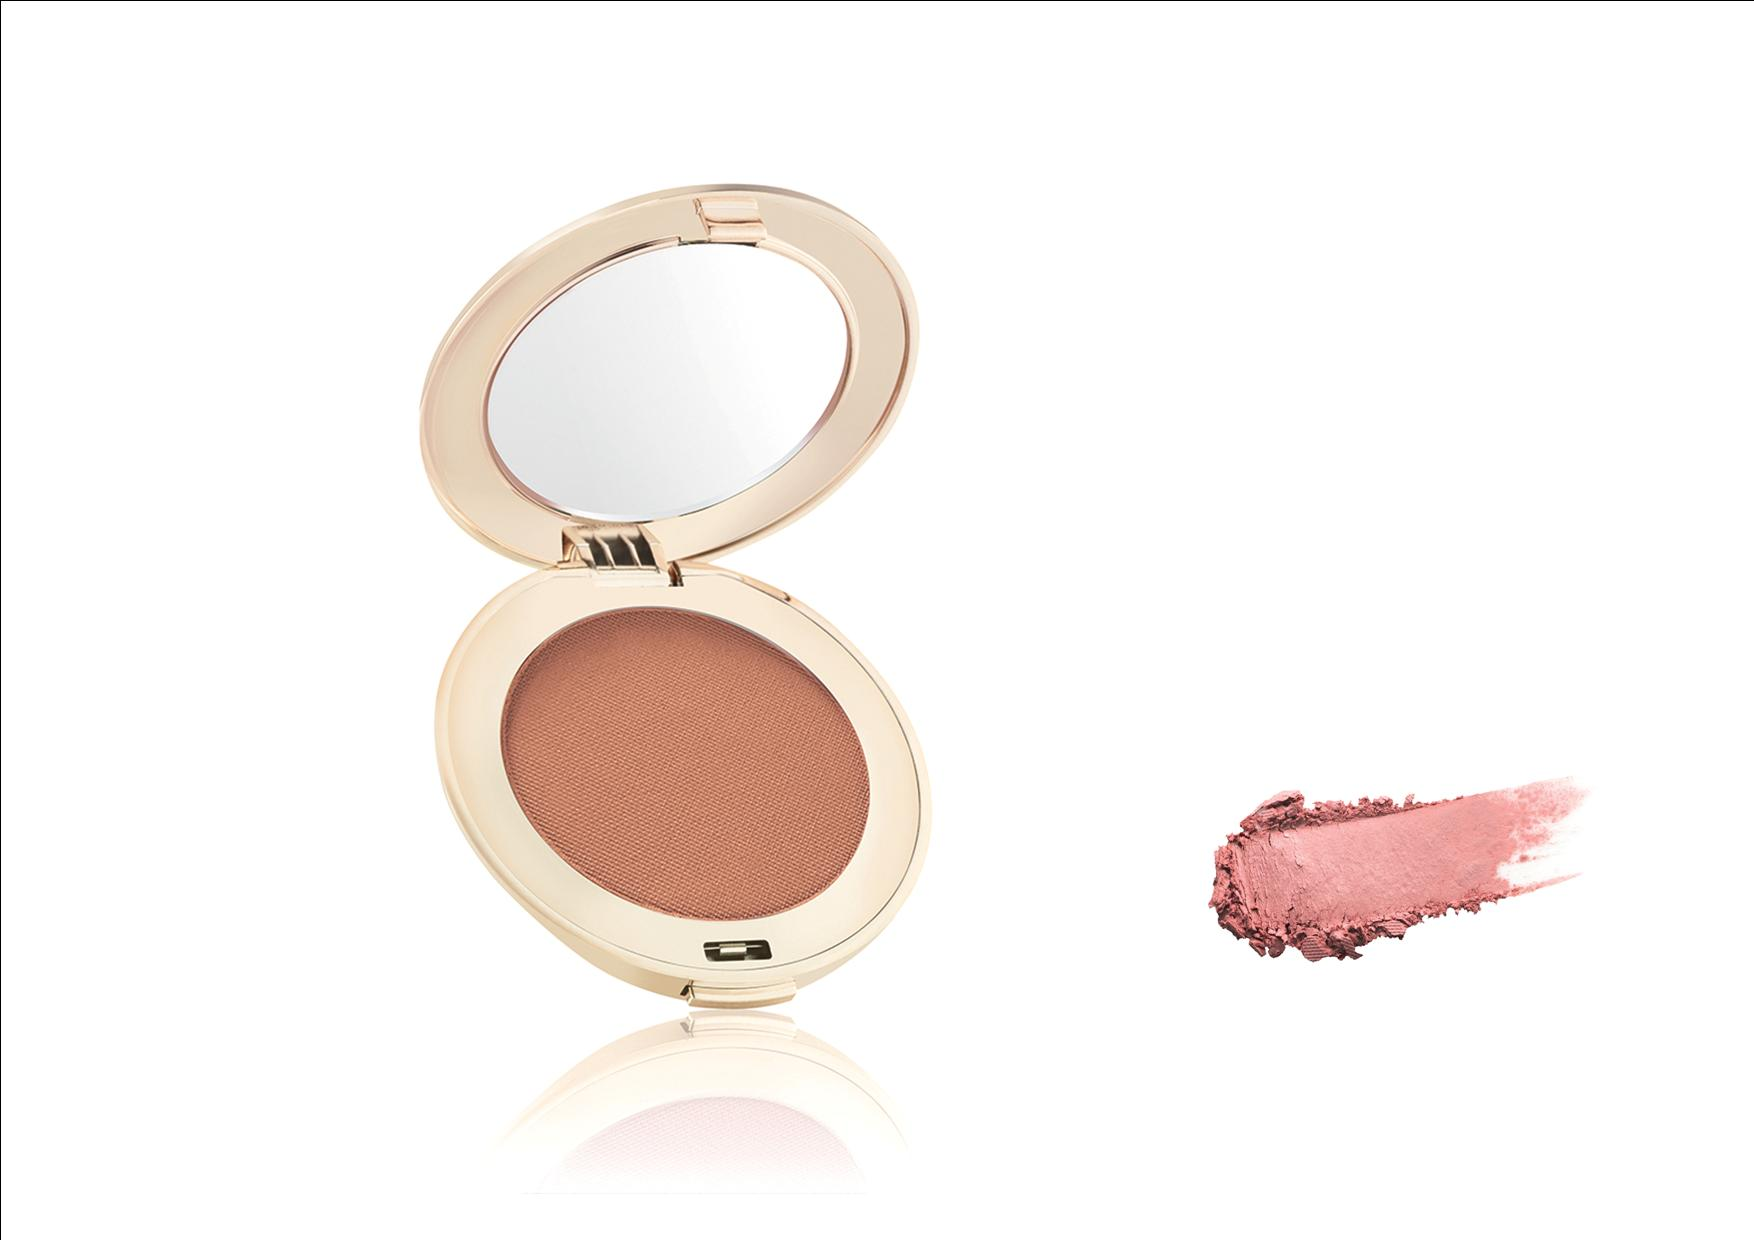 Jane Iredale WANGEN Pure Pressed Blush Sheer Honey